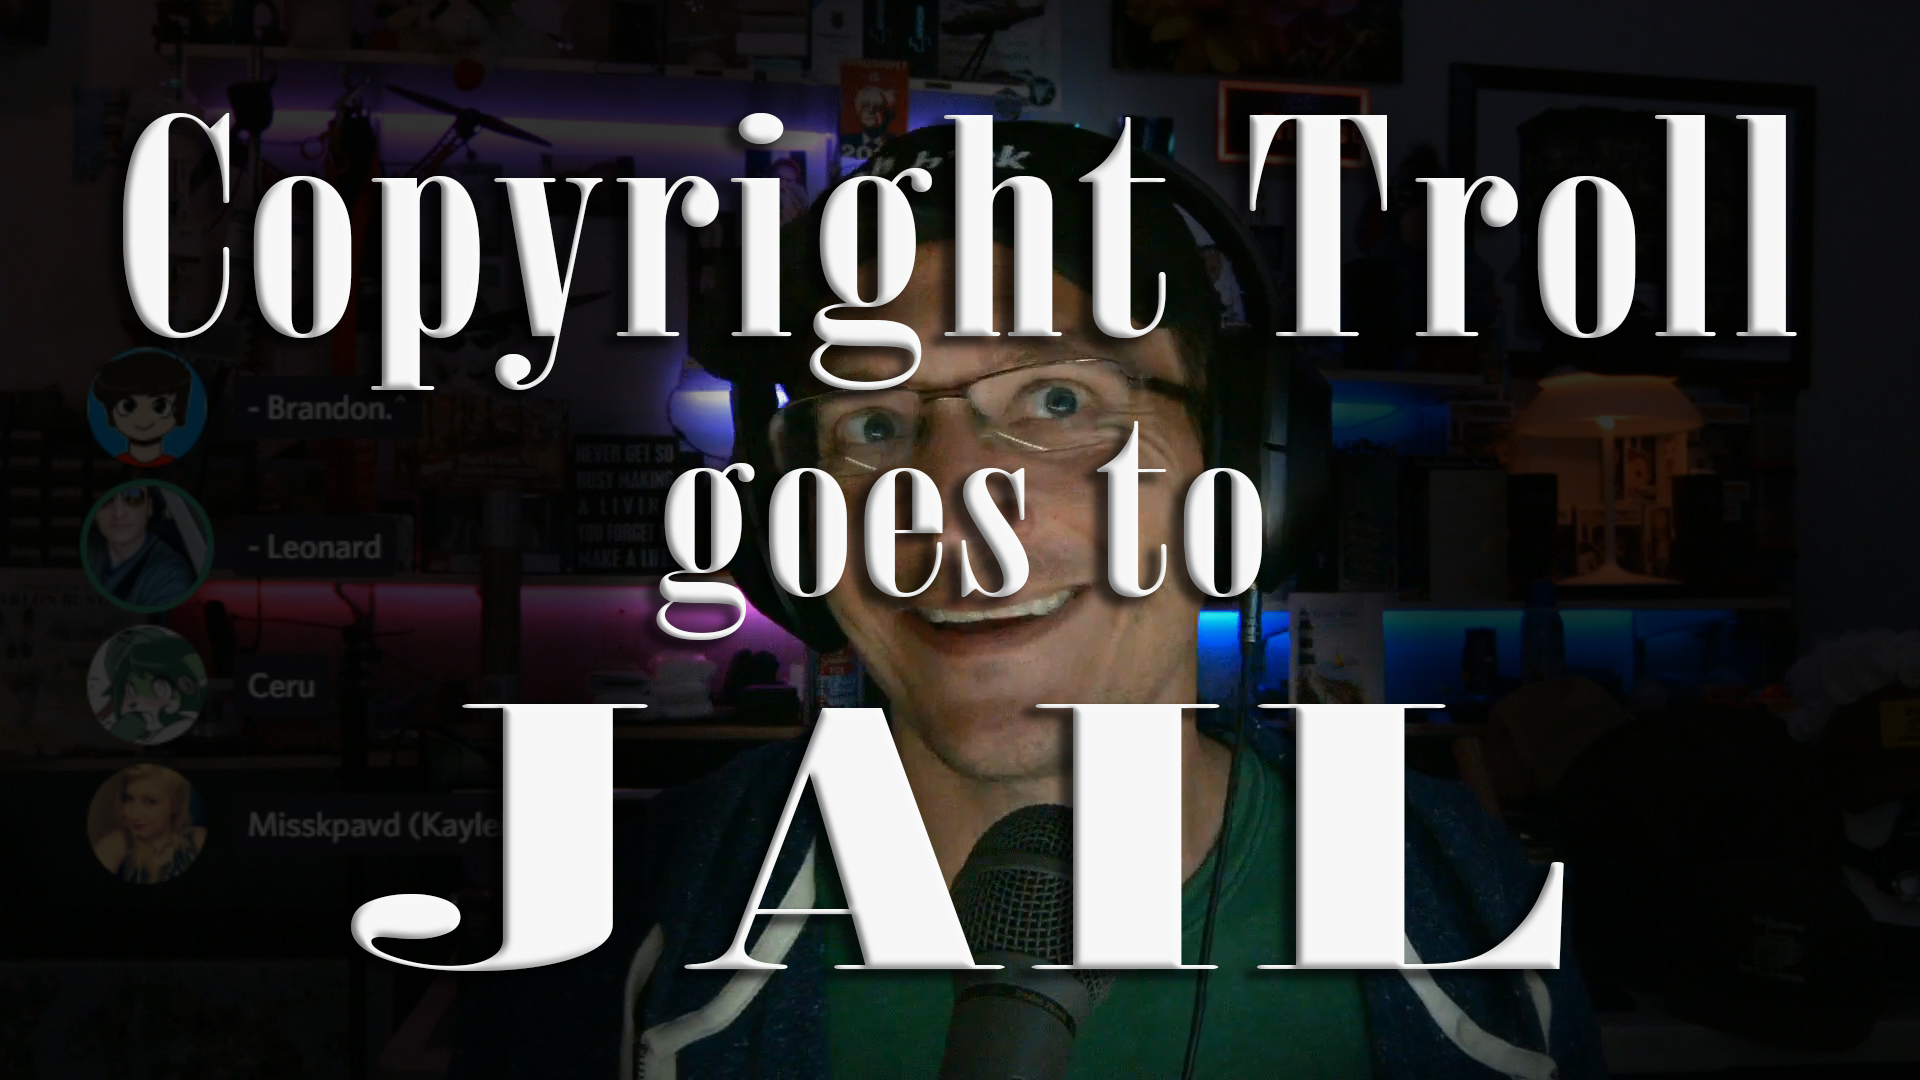 Prenda Law Copyright Trolls Are Going To Jail Lawful Masses